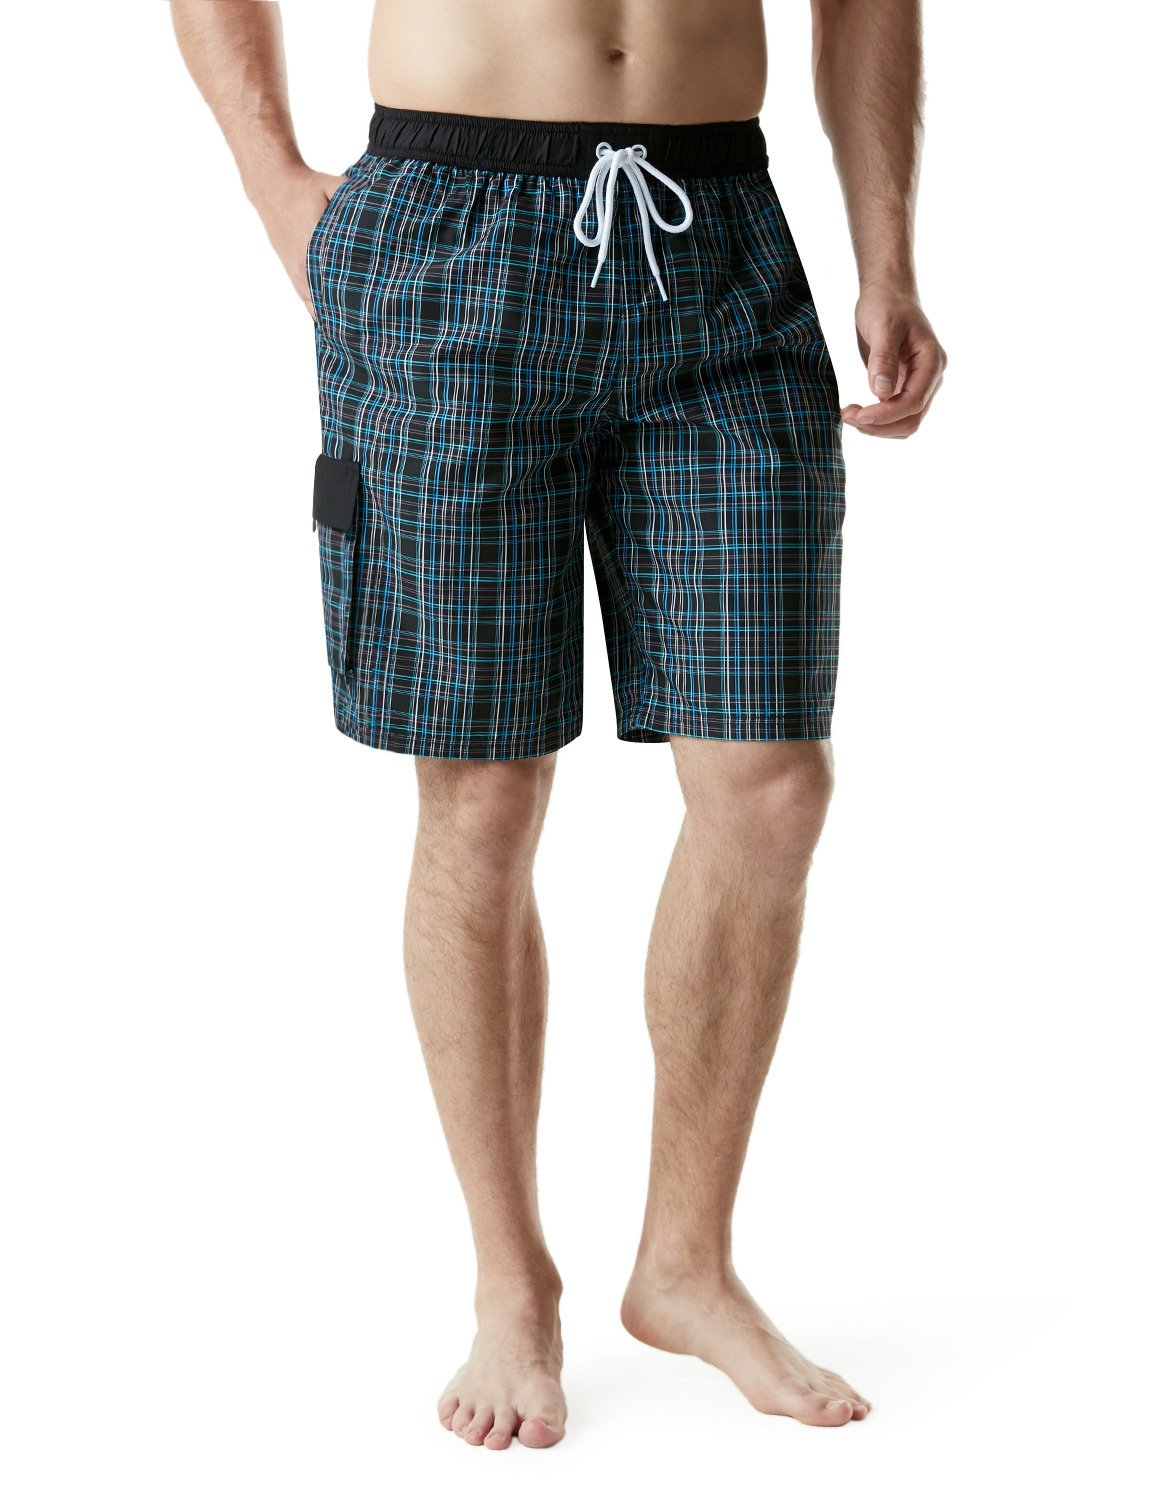 Tesla TM-MSB04-CKB_Medium Men's Swimtrunks Quick Dry Water Beach MSB04 by Tesla